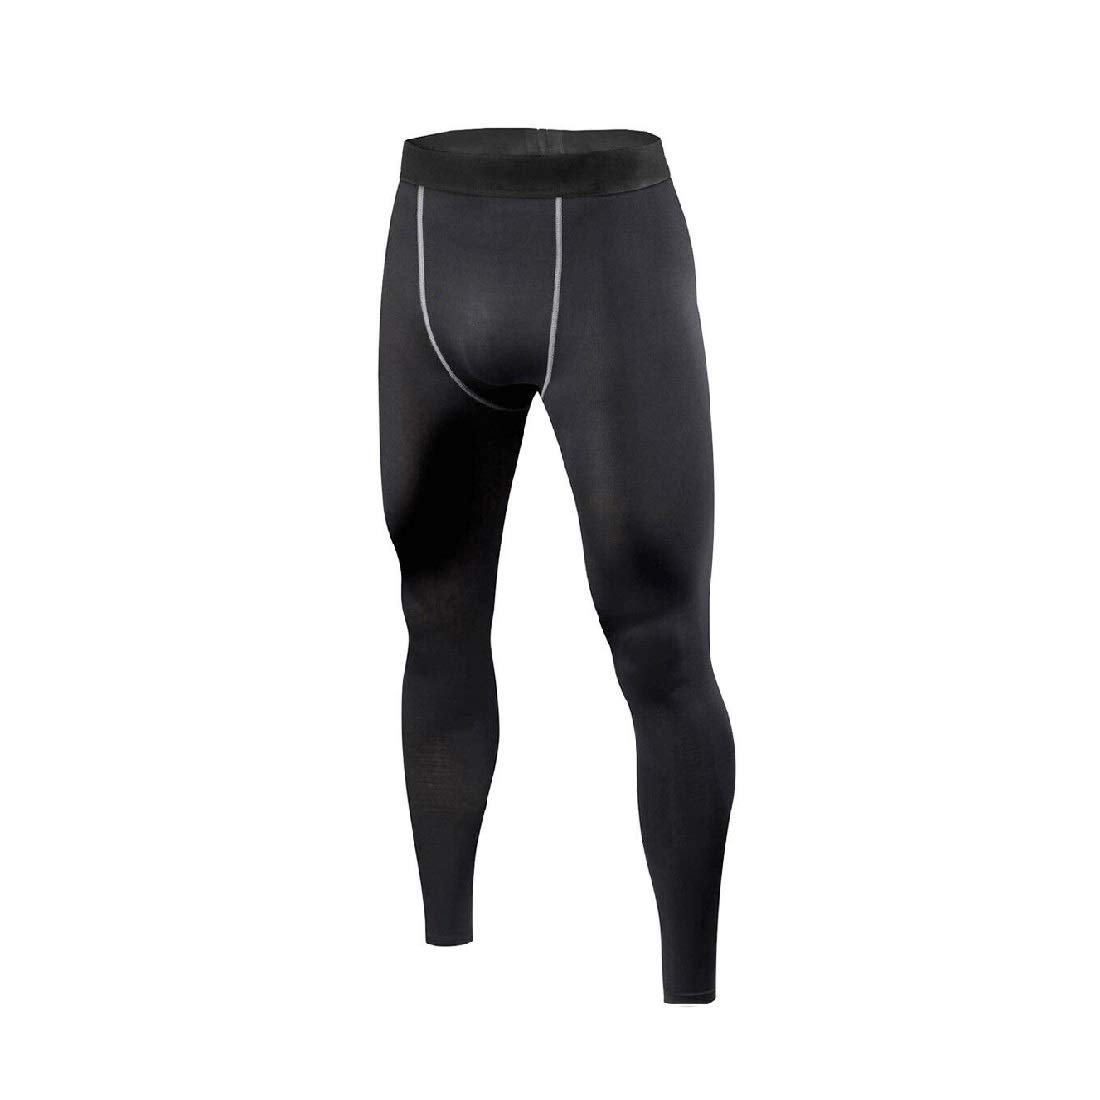 Mens Black Compression Long Pants Under Base Layer Tights #HLFN Peppermint Store XS-S